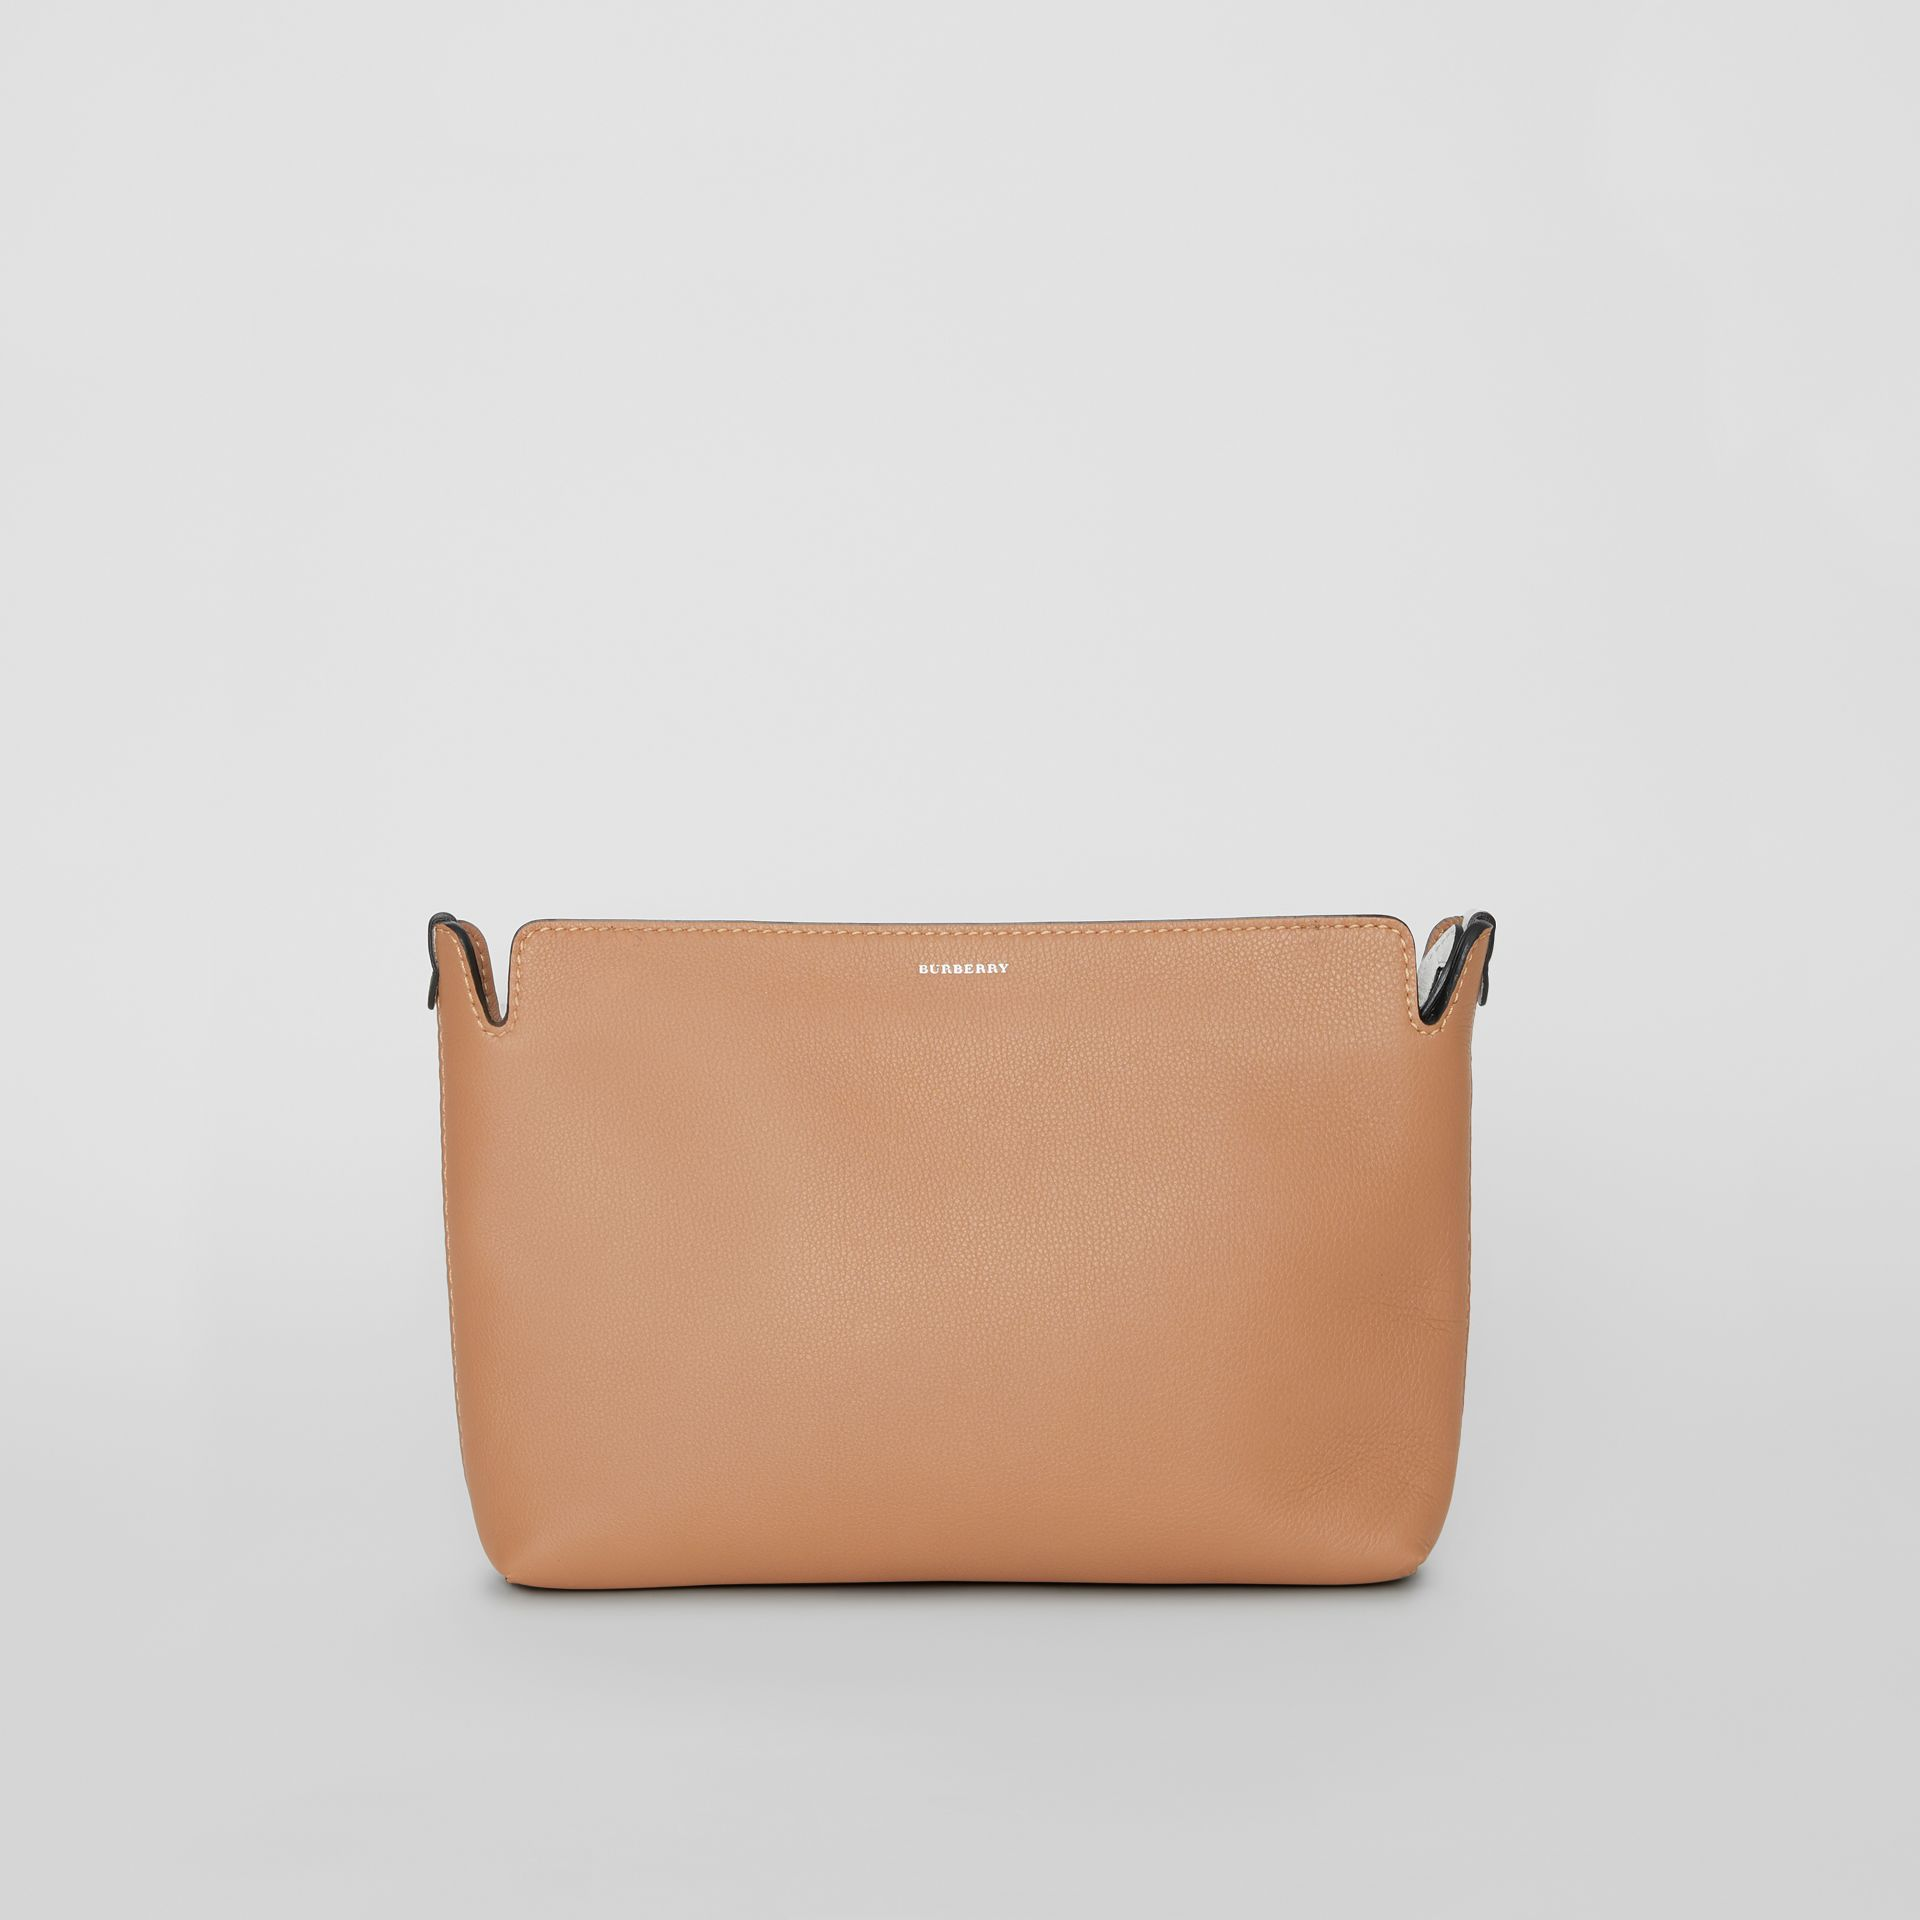 Medium Two-tone Leather Clutch in Light Camel/chalk White - Women | Burberry United States - gallery image 0